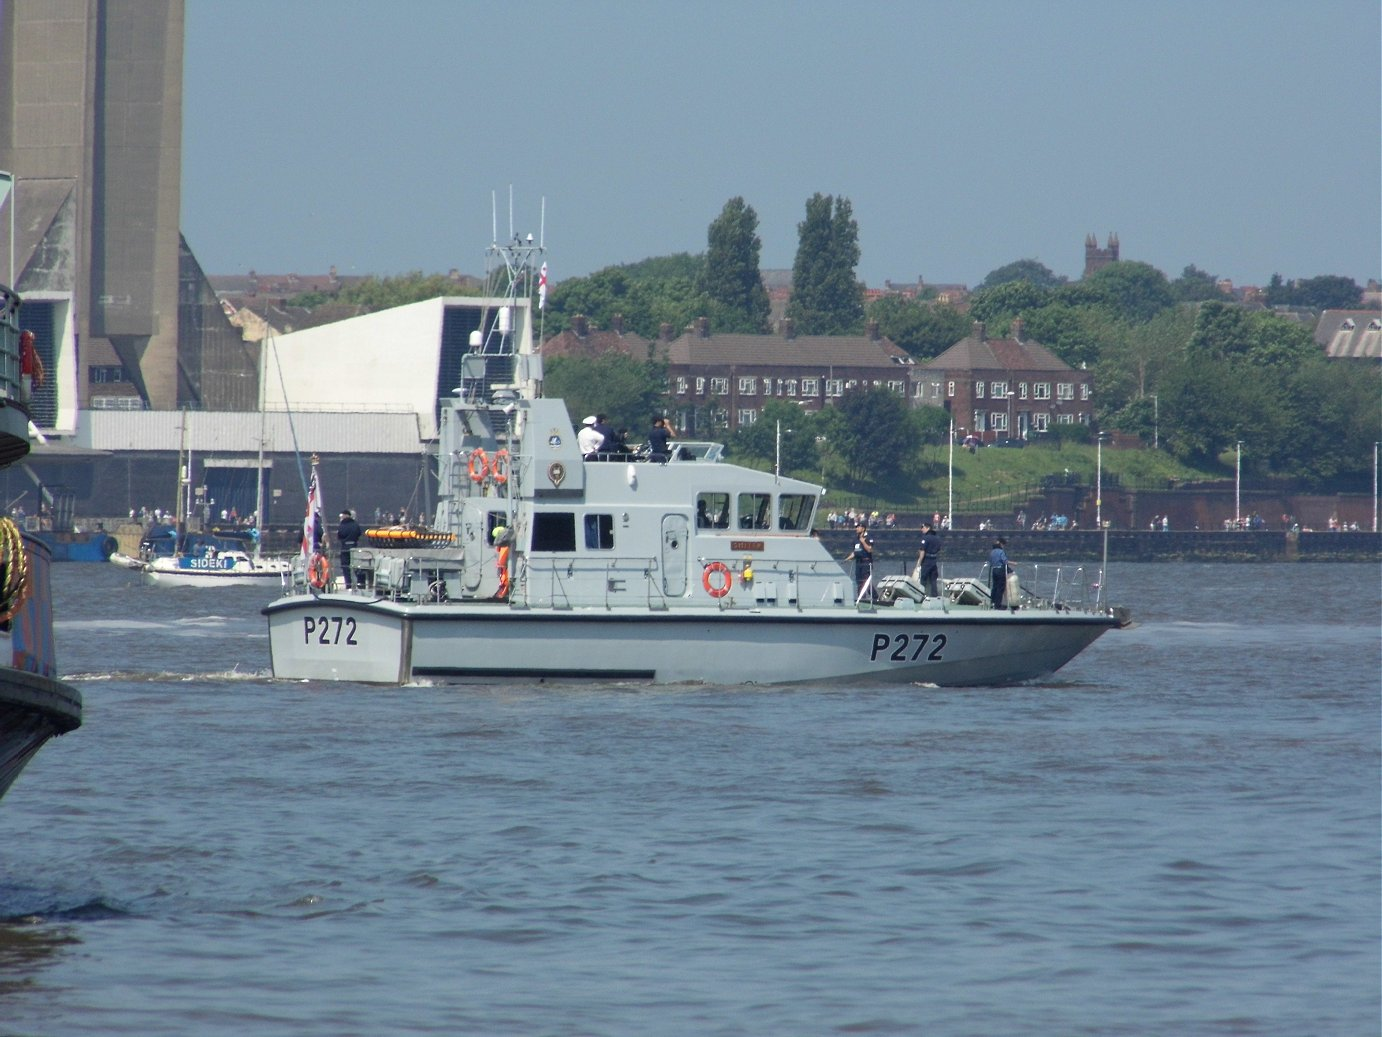 Explorer class coastal training patrol craft H.M.S. Smiter at Liverpool, May 28th 2018